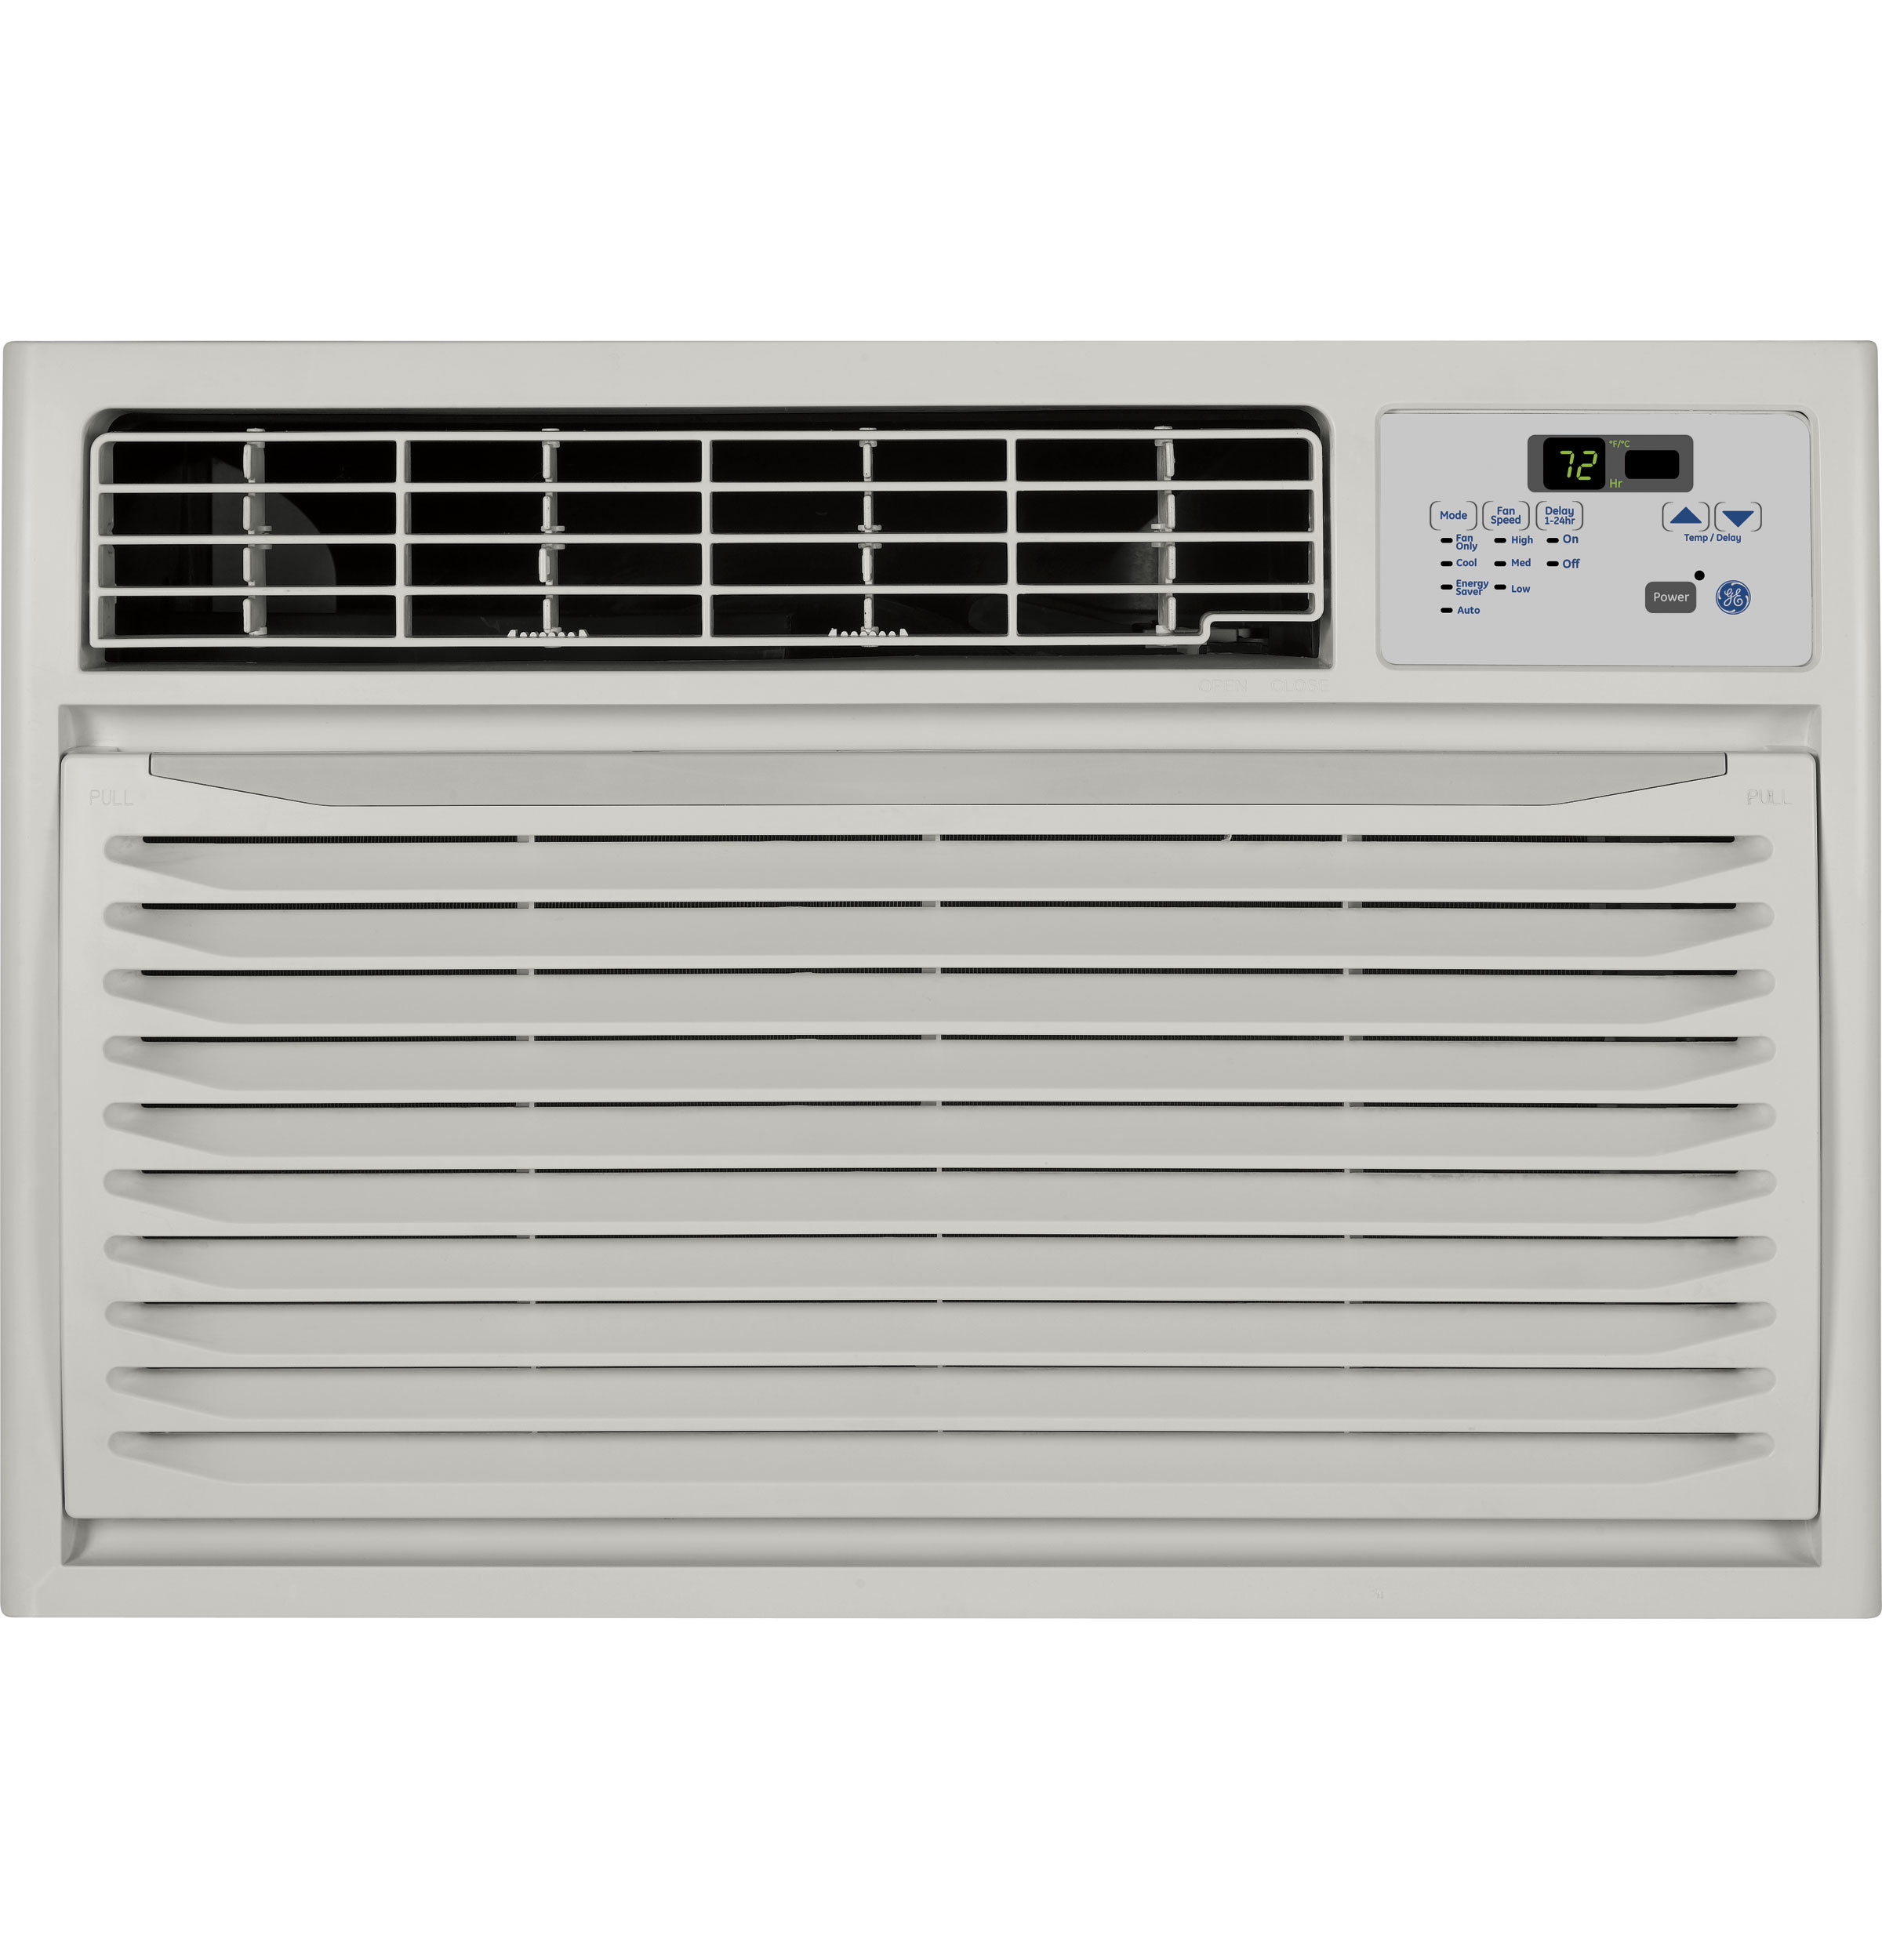 Wall Air Conditioner Home Depot lg window air conditioner home depot | buckeyebride